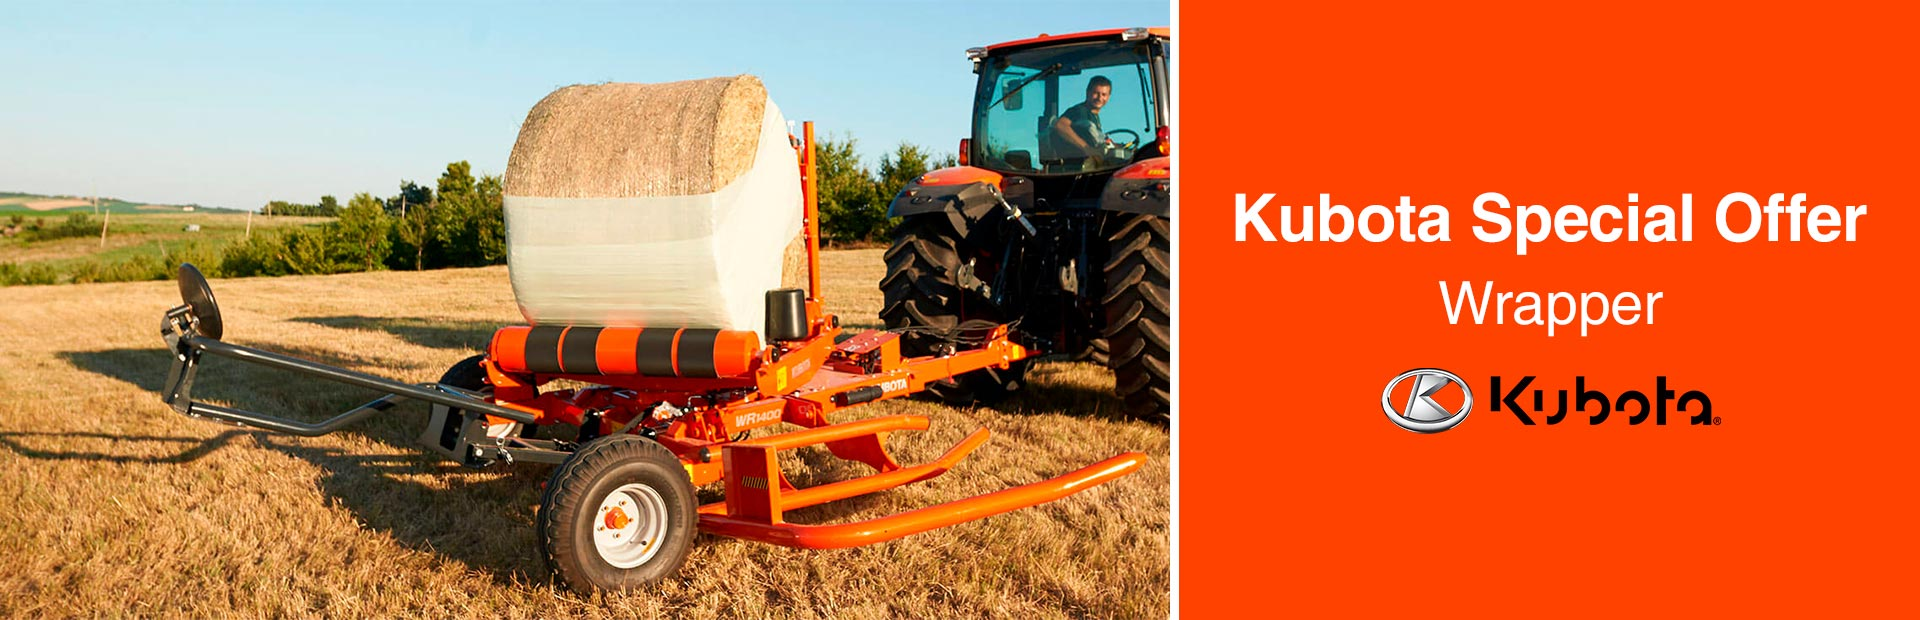 Kubota: Kubota Special Offer - Wrappers